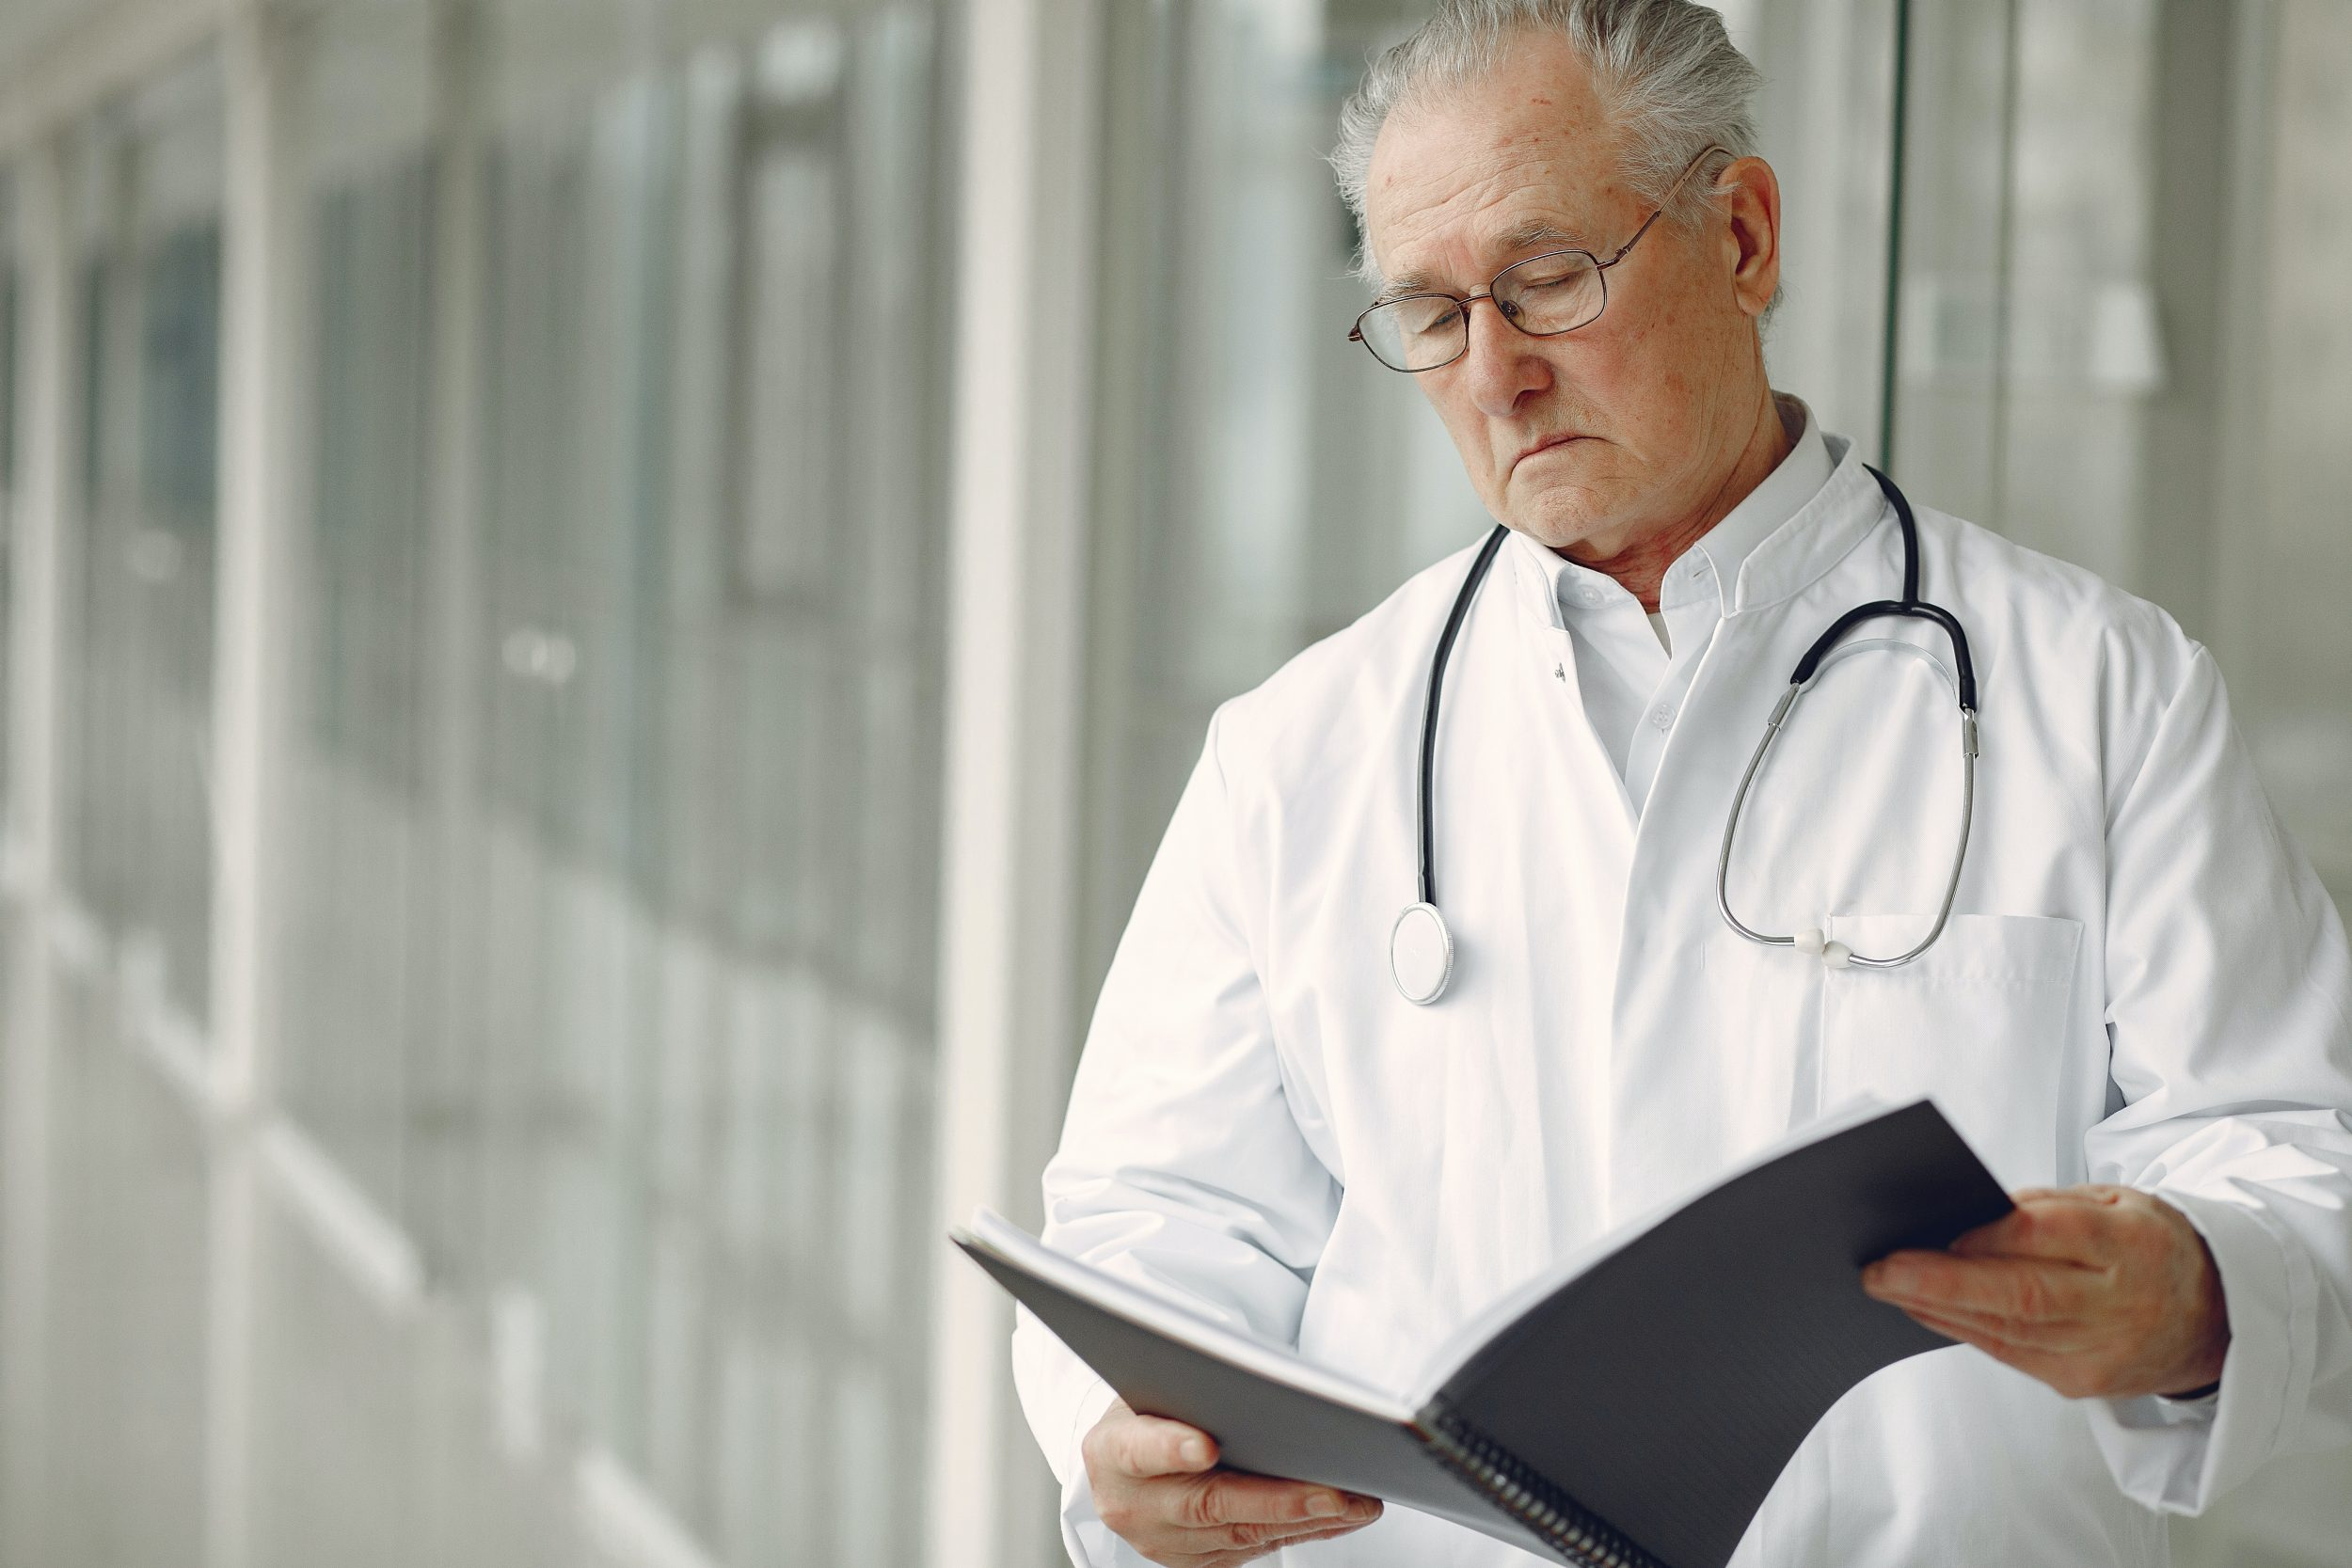 Medicare Part B covers your doctor visits.